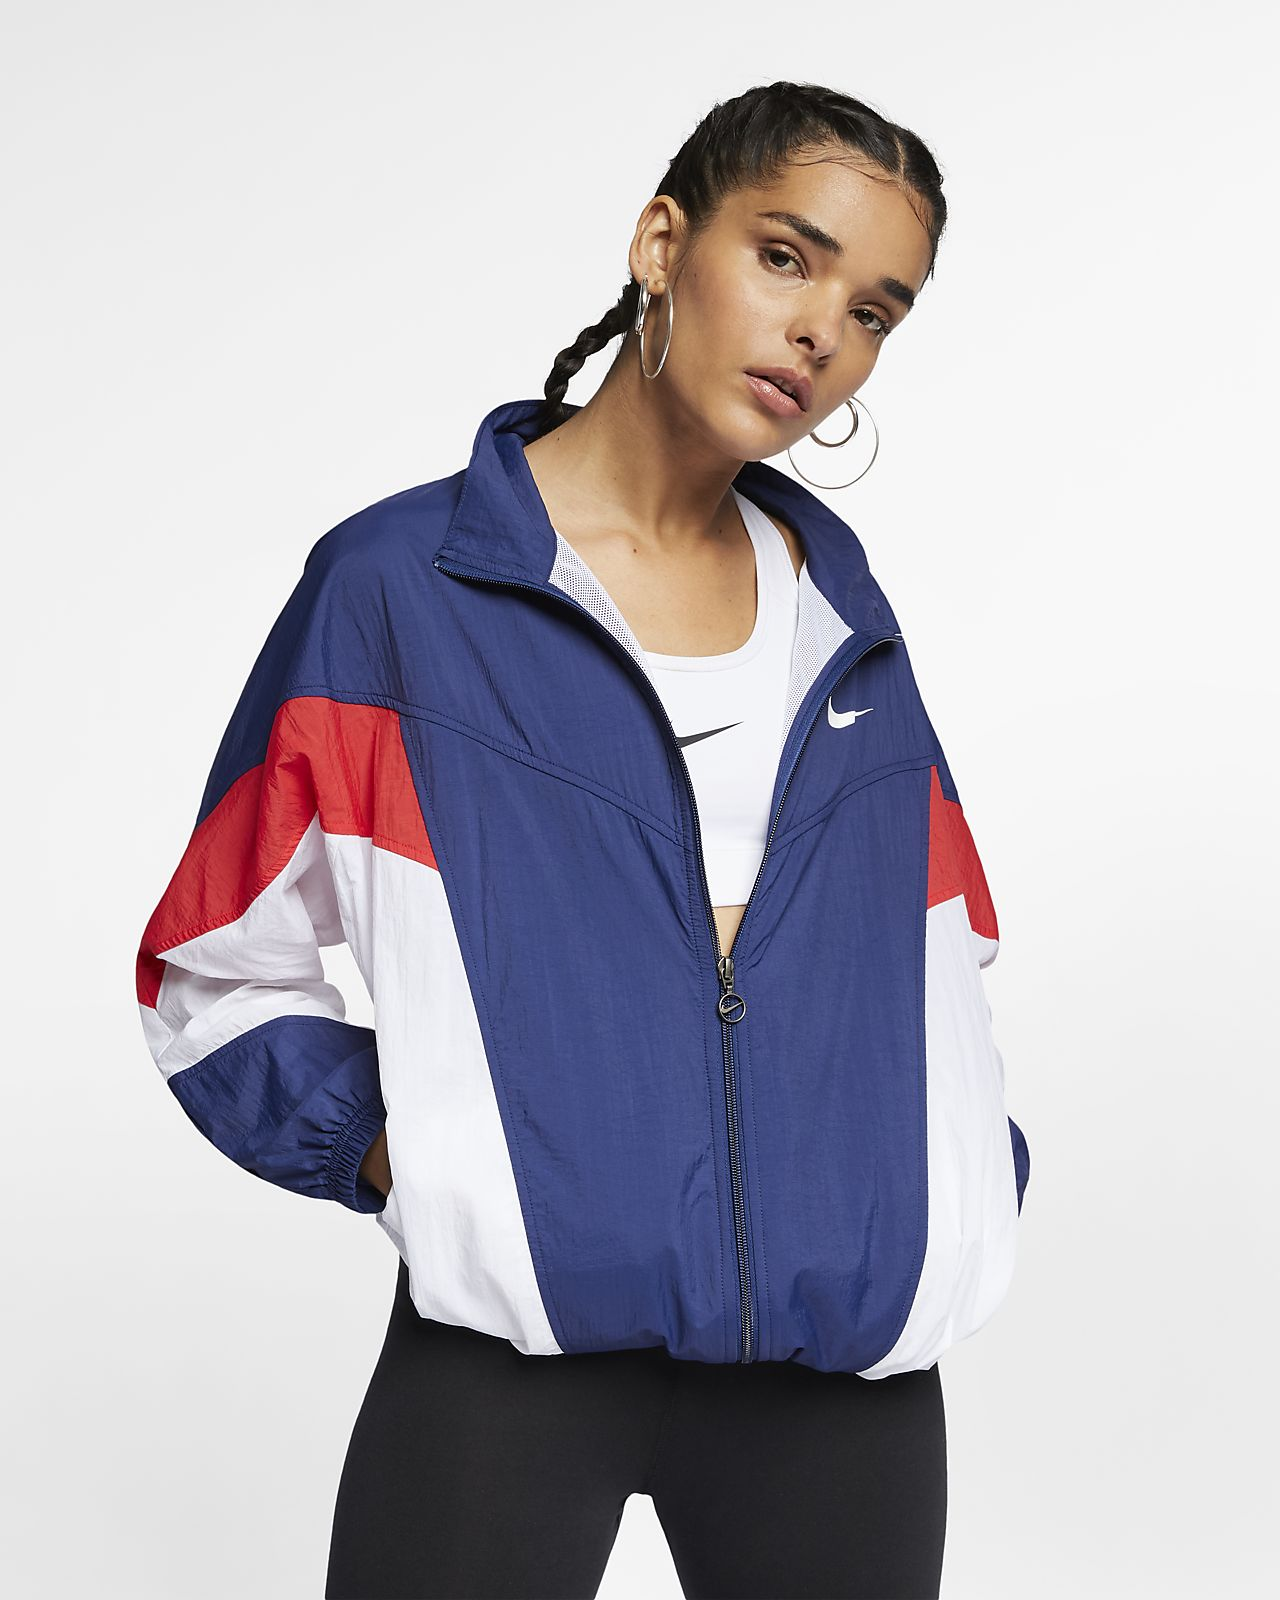 c2ae96a02b Nike Sportswear Windrunner  Throwback  Women s Windbreaker. Nike.com DK